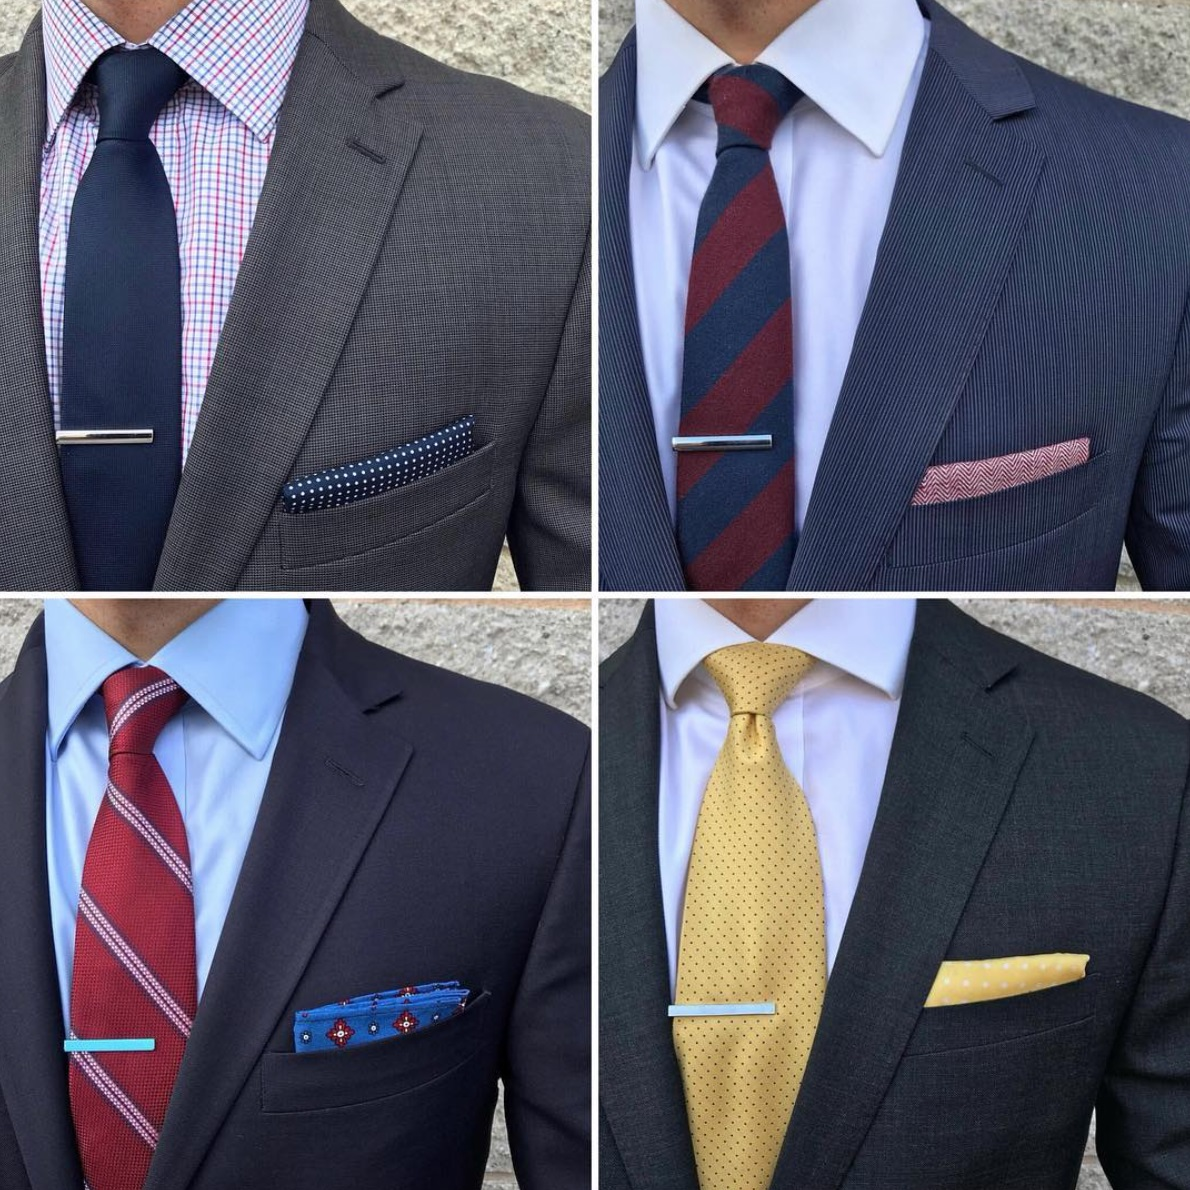 How to Match Your Tie With a Suit by GentWith Blog